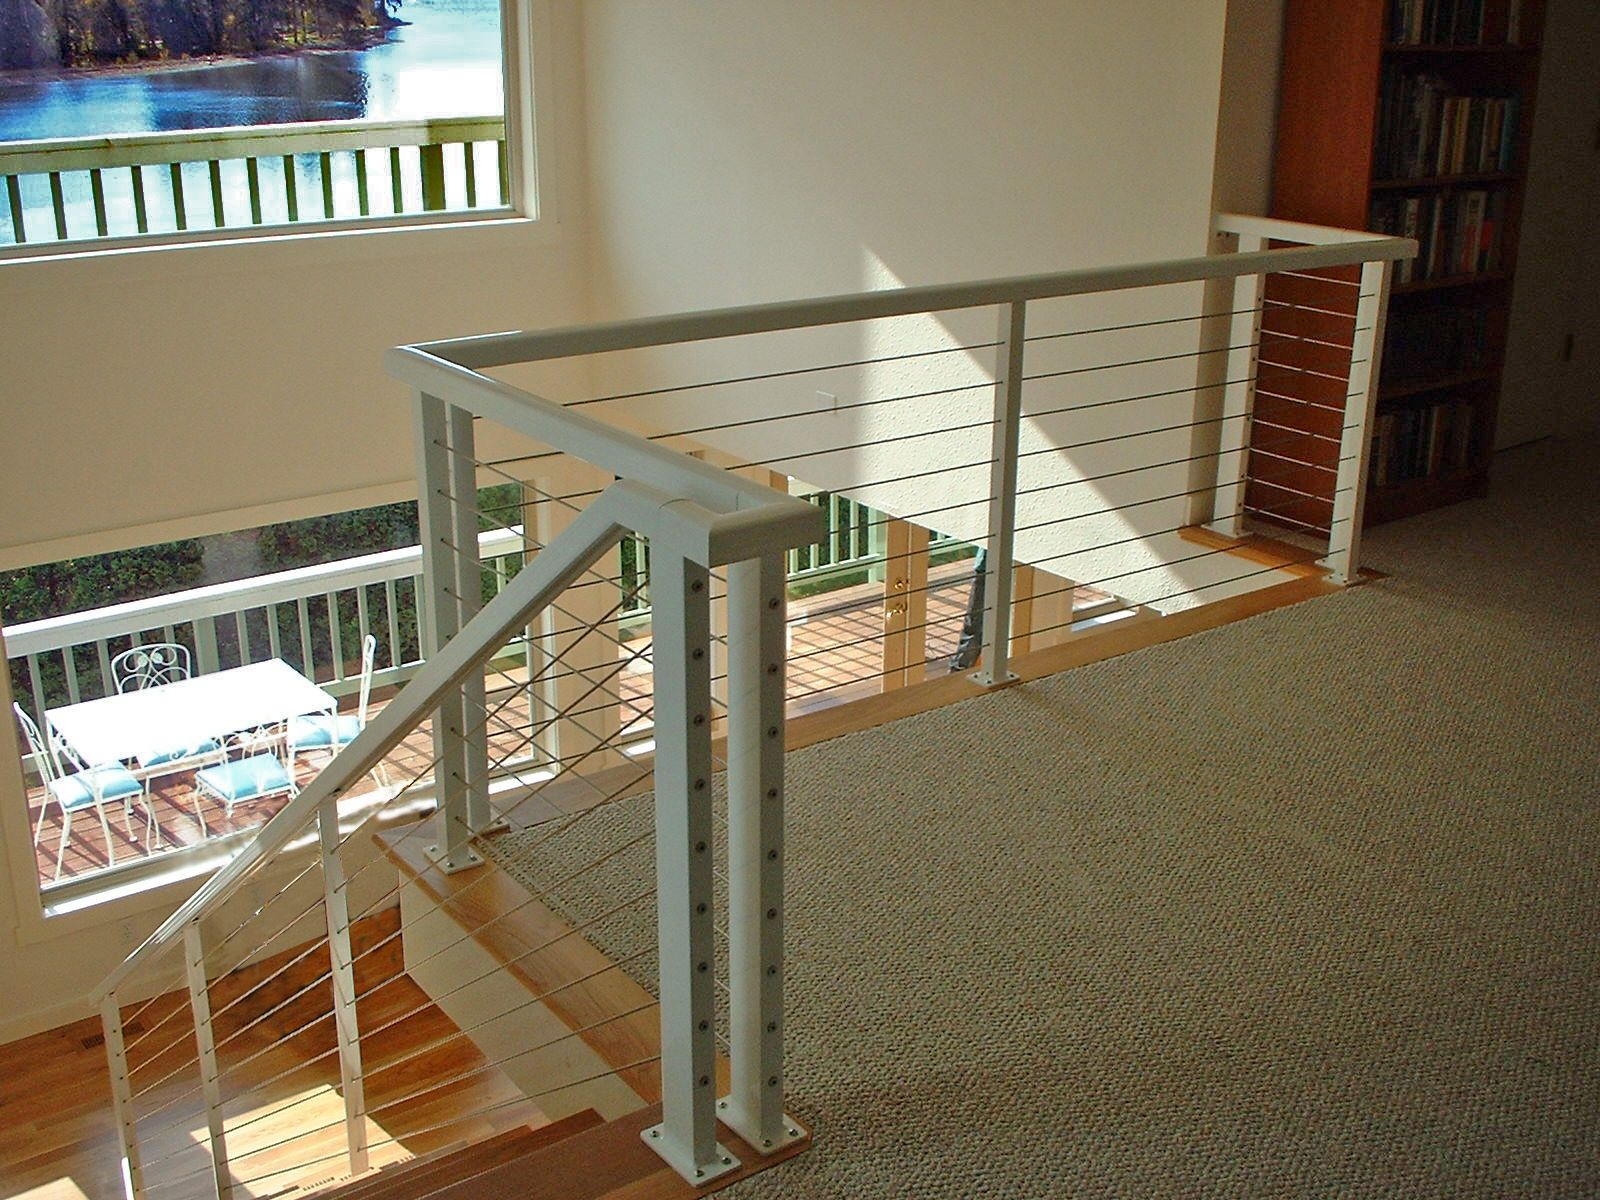 Cable Rail, Cable Railing System, Cable Rails, Cable Railings ...